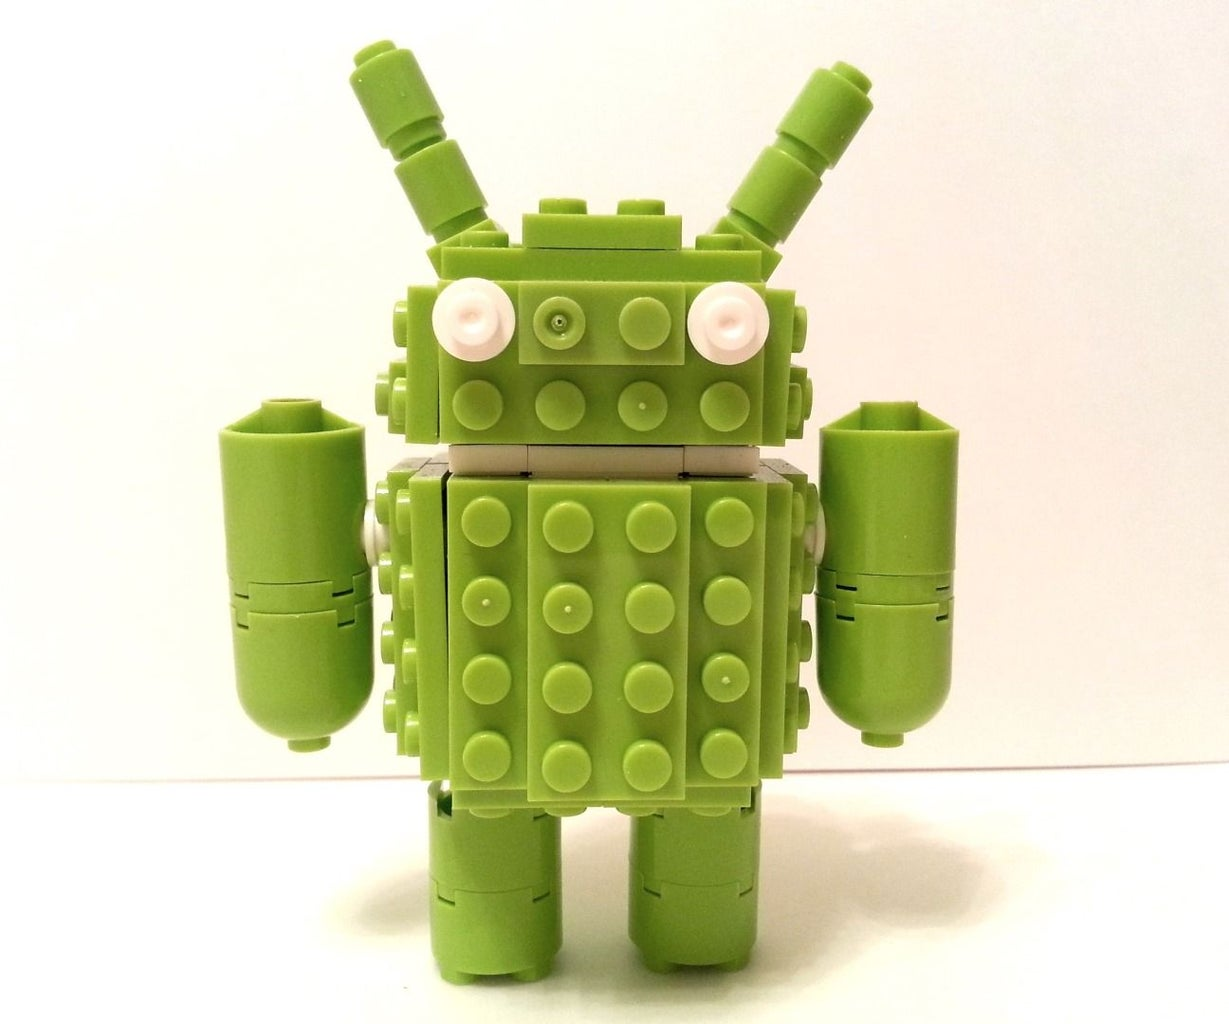 Completed Android Lego Bot